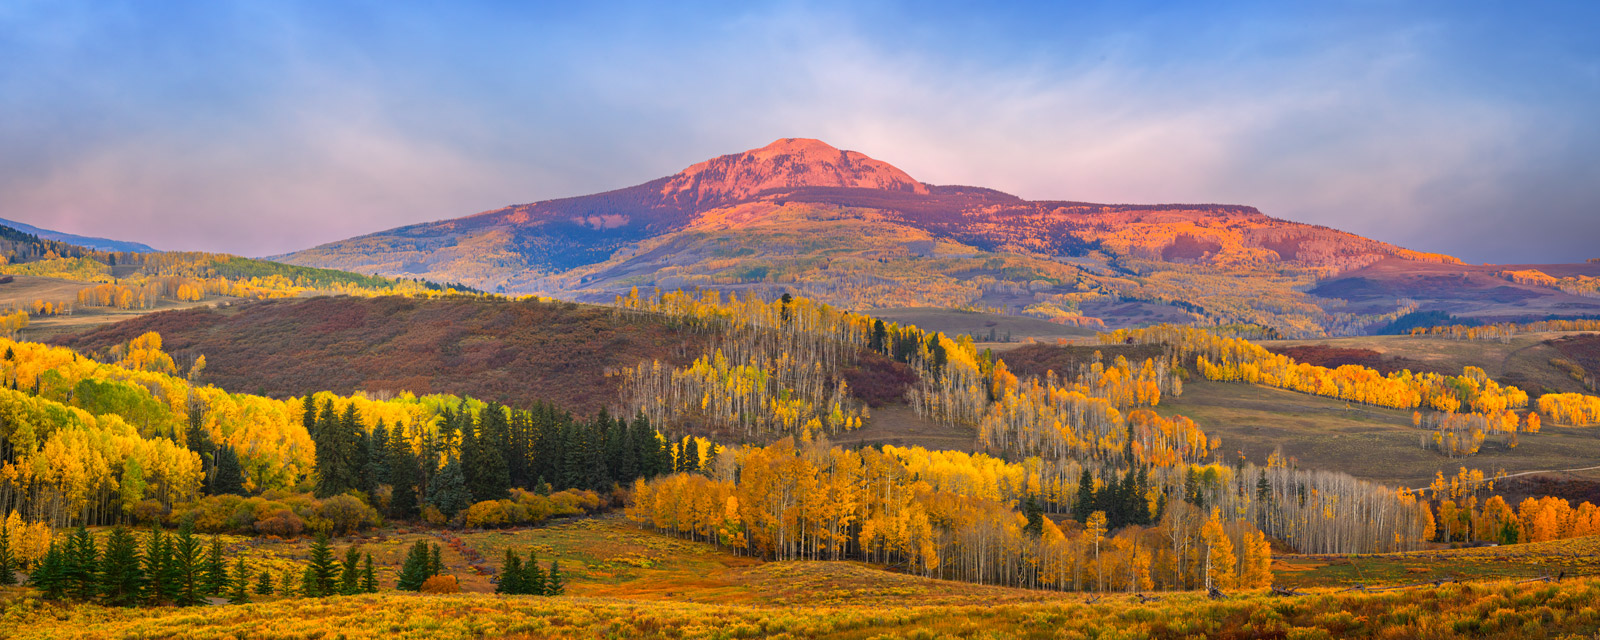 Colorado, Southwest Colorado, Fall Color, Mountains, back road, photo